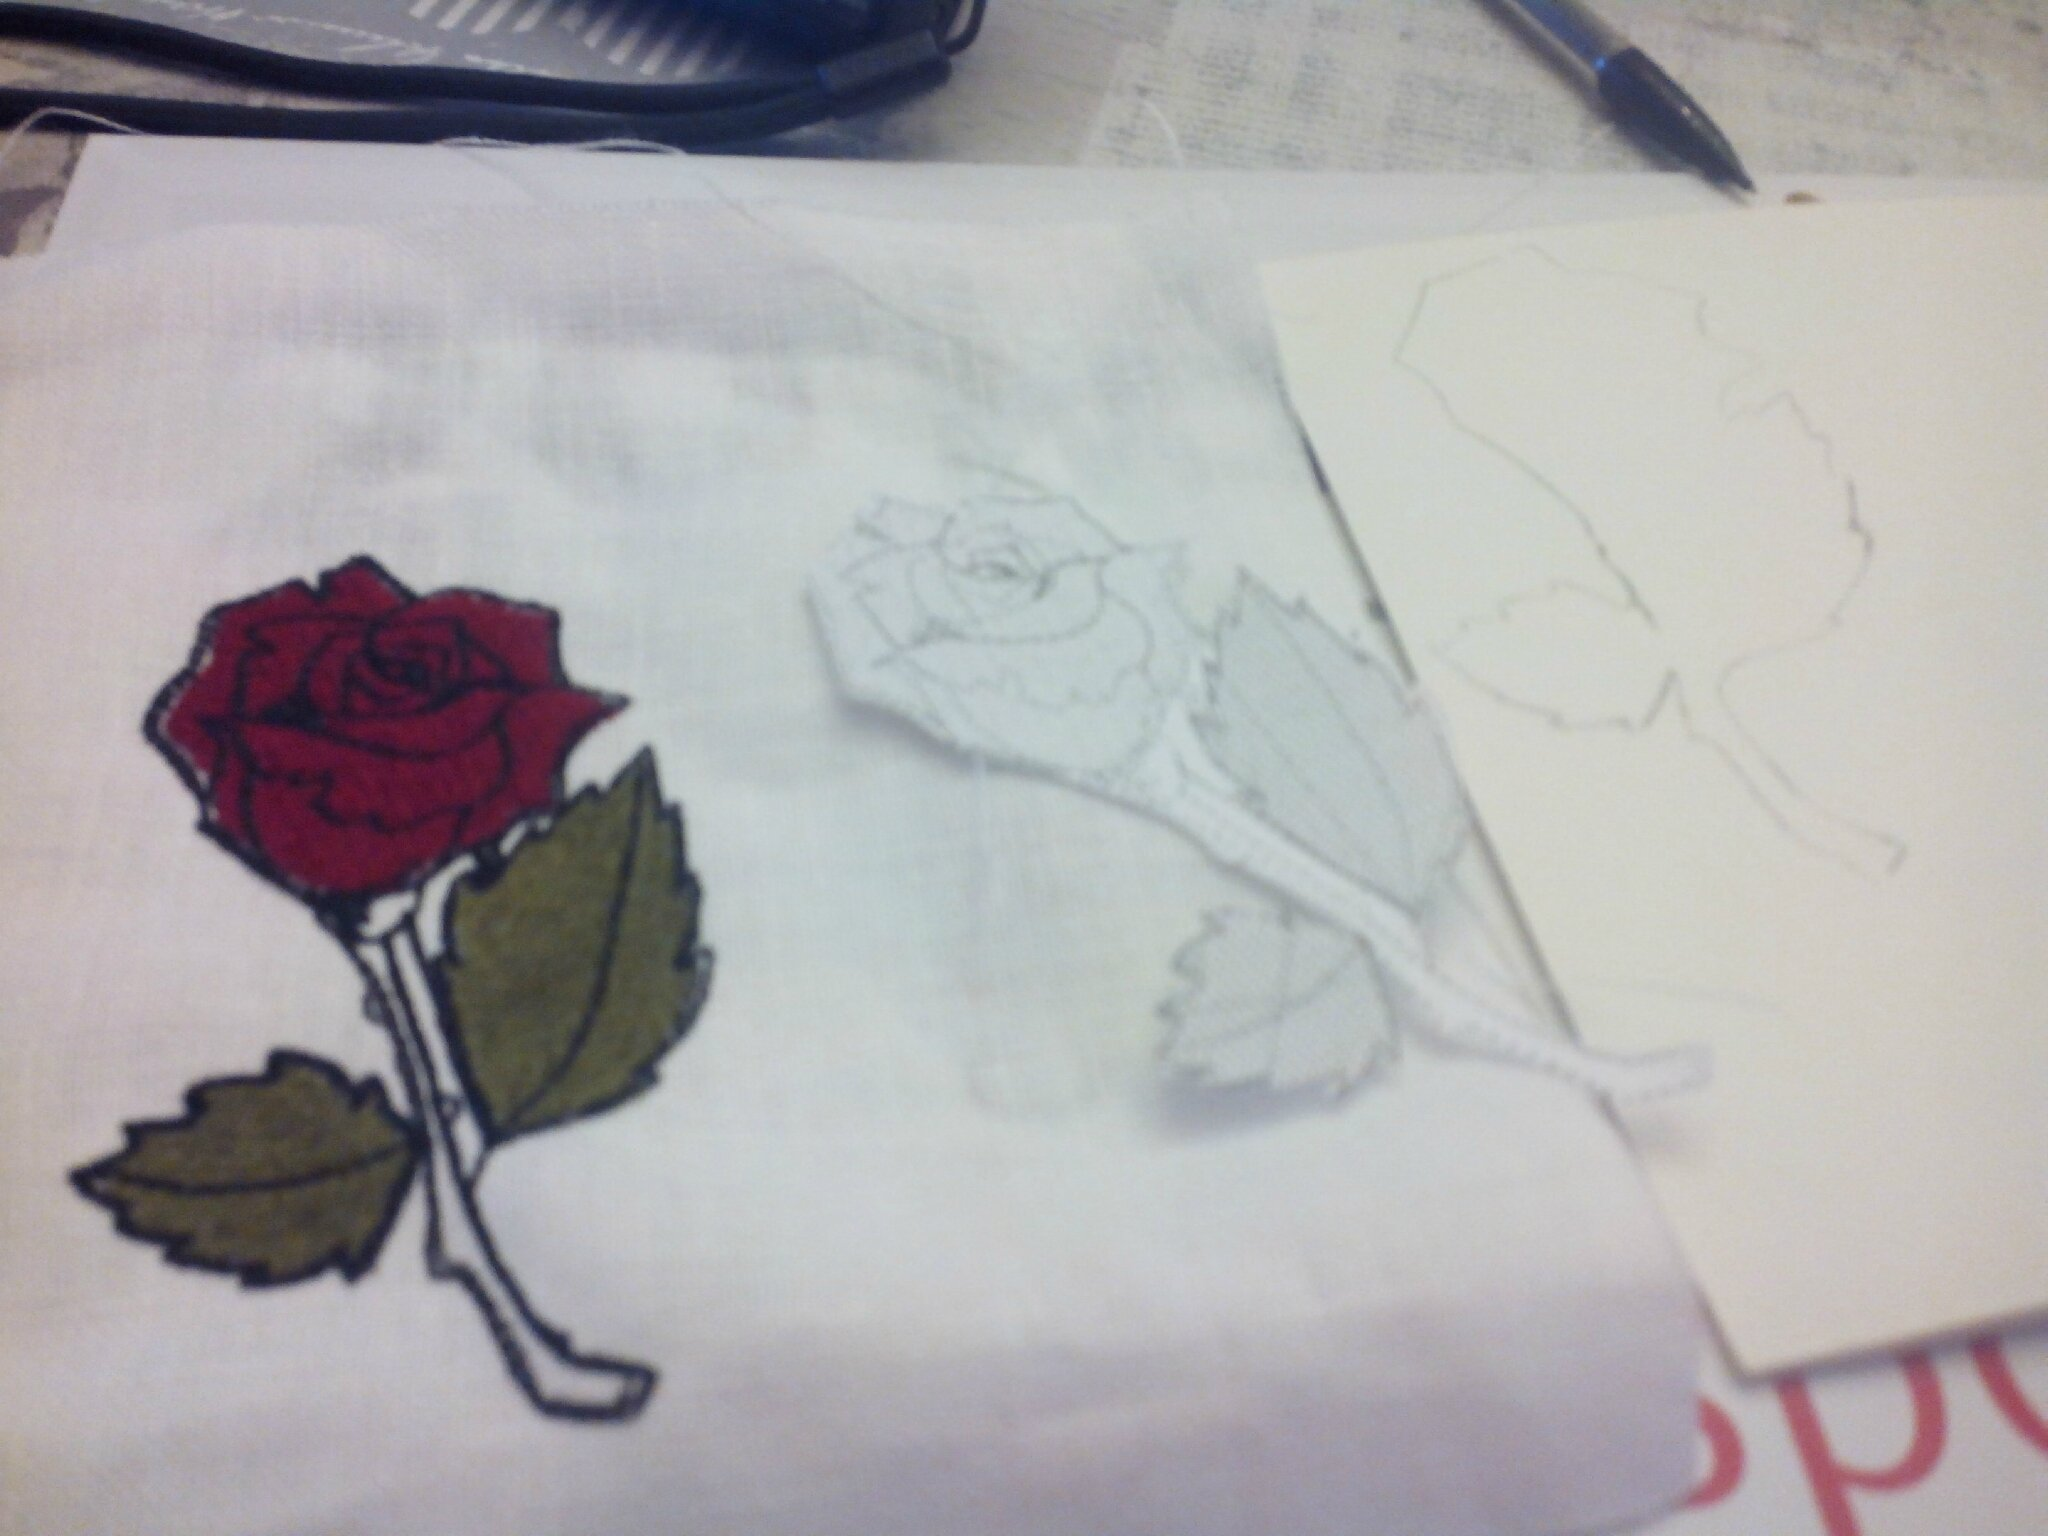 BOUTONNIERE ROSE BRODEE URBAN STYLE CARTOON AMD A COUDRE (4)